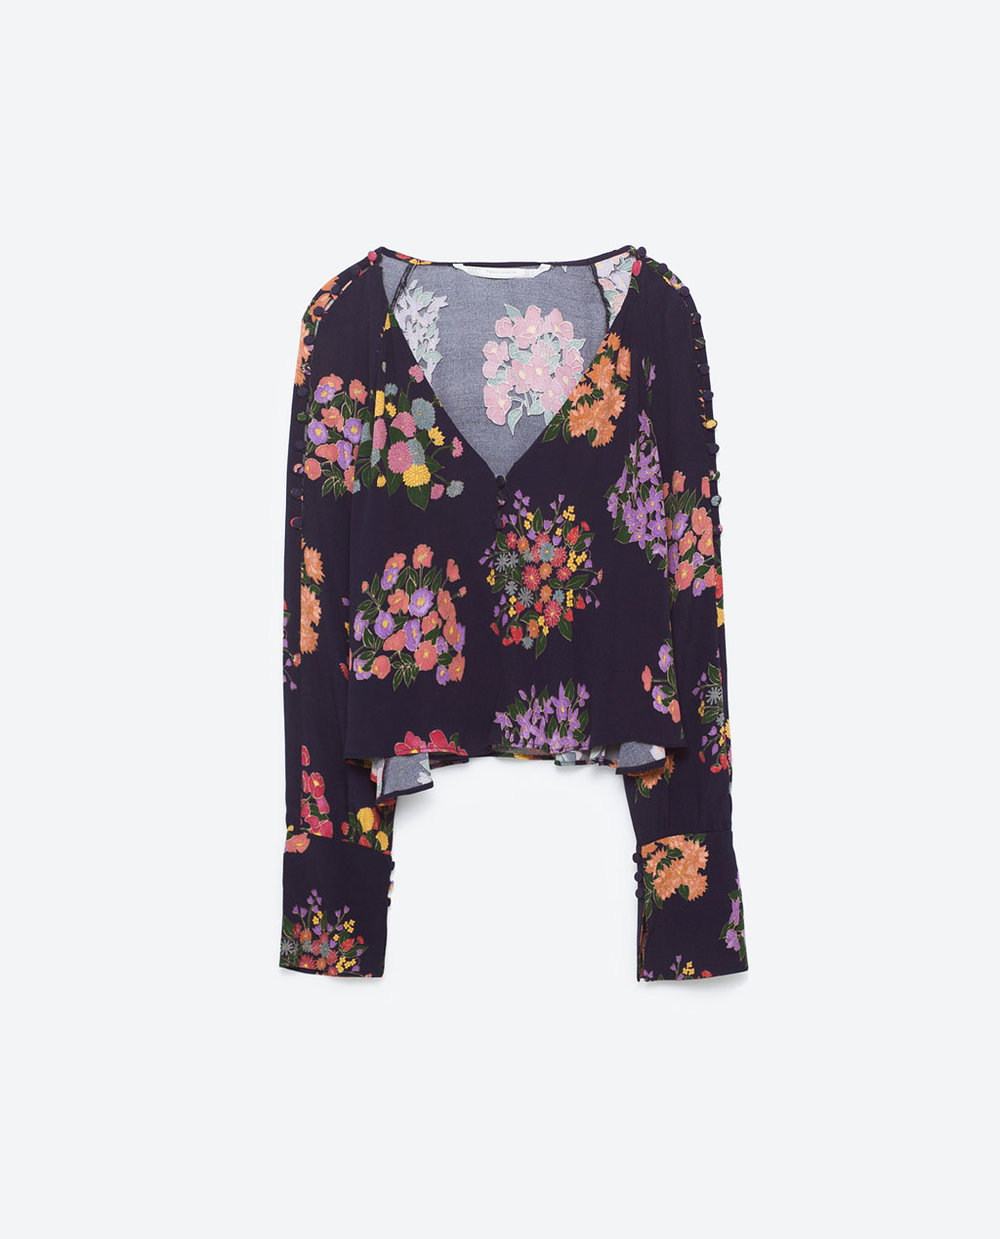 Zara floral top from zara.com.